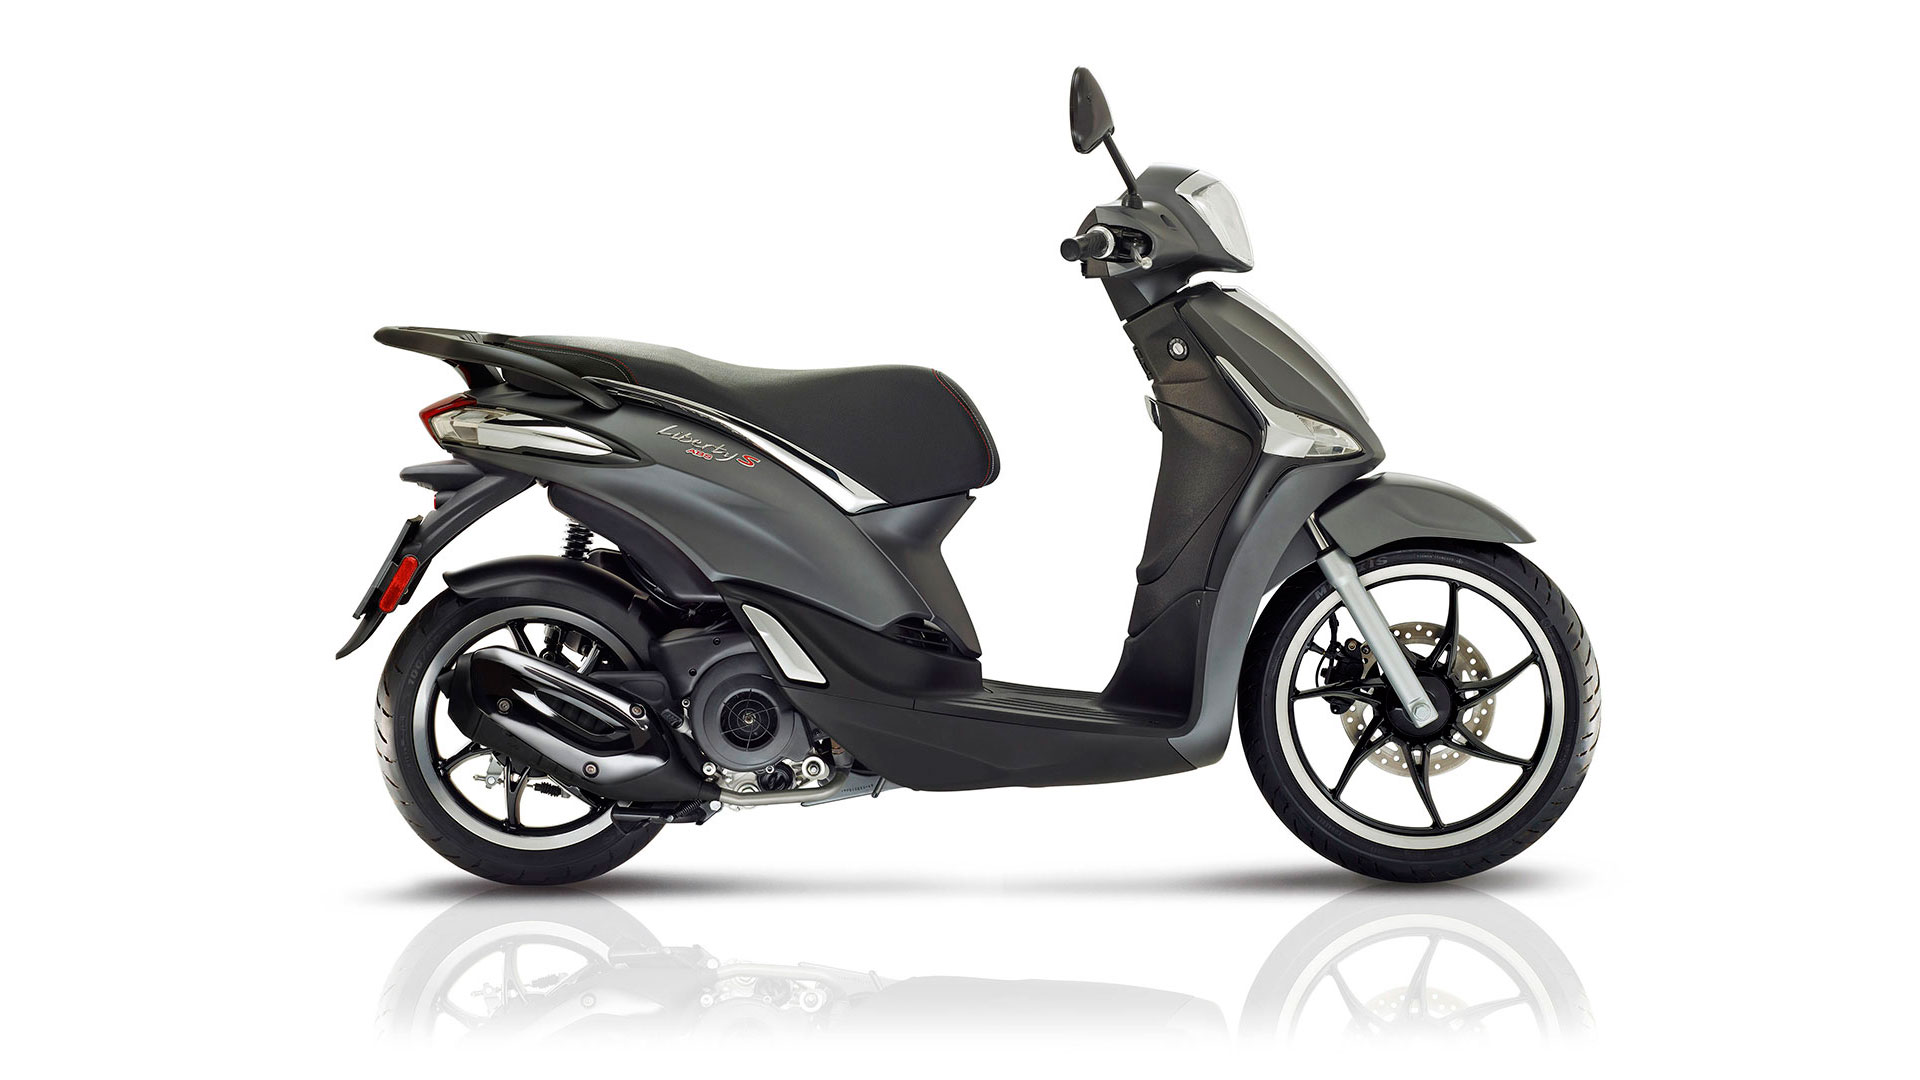 Achat Piaggio Liberty S ABS 125 cm3 neuf à Nice chez Scoot Center-2